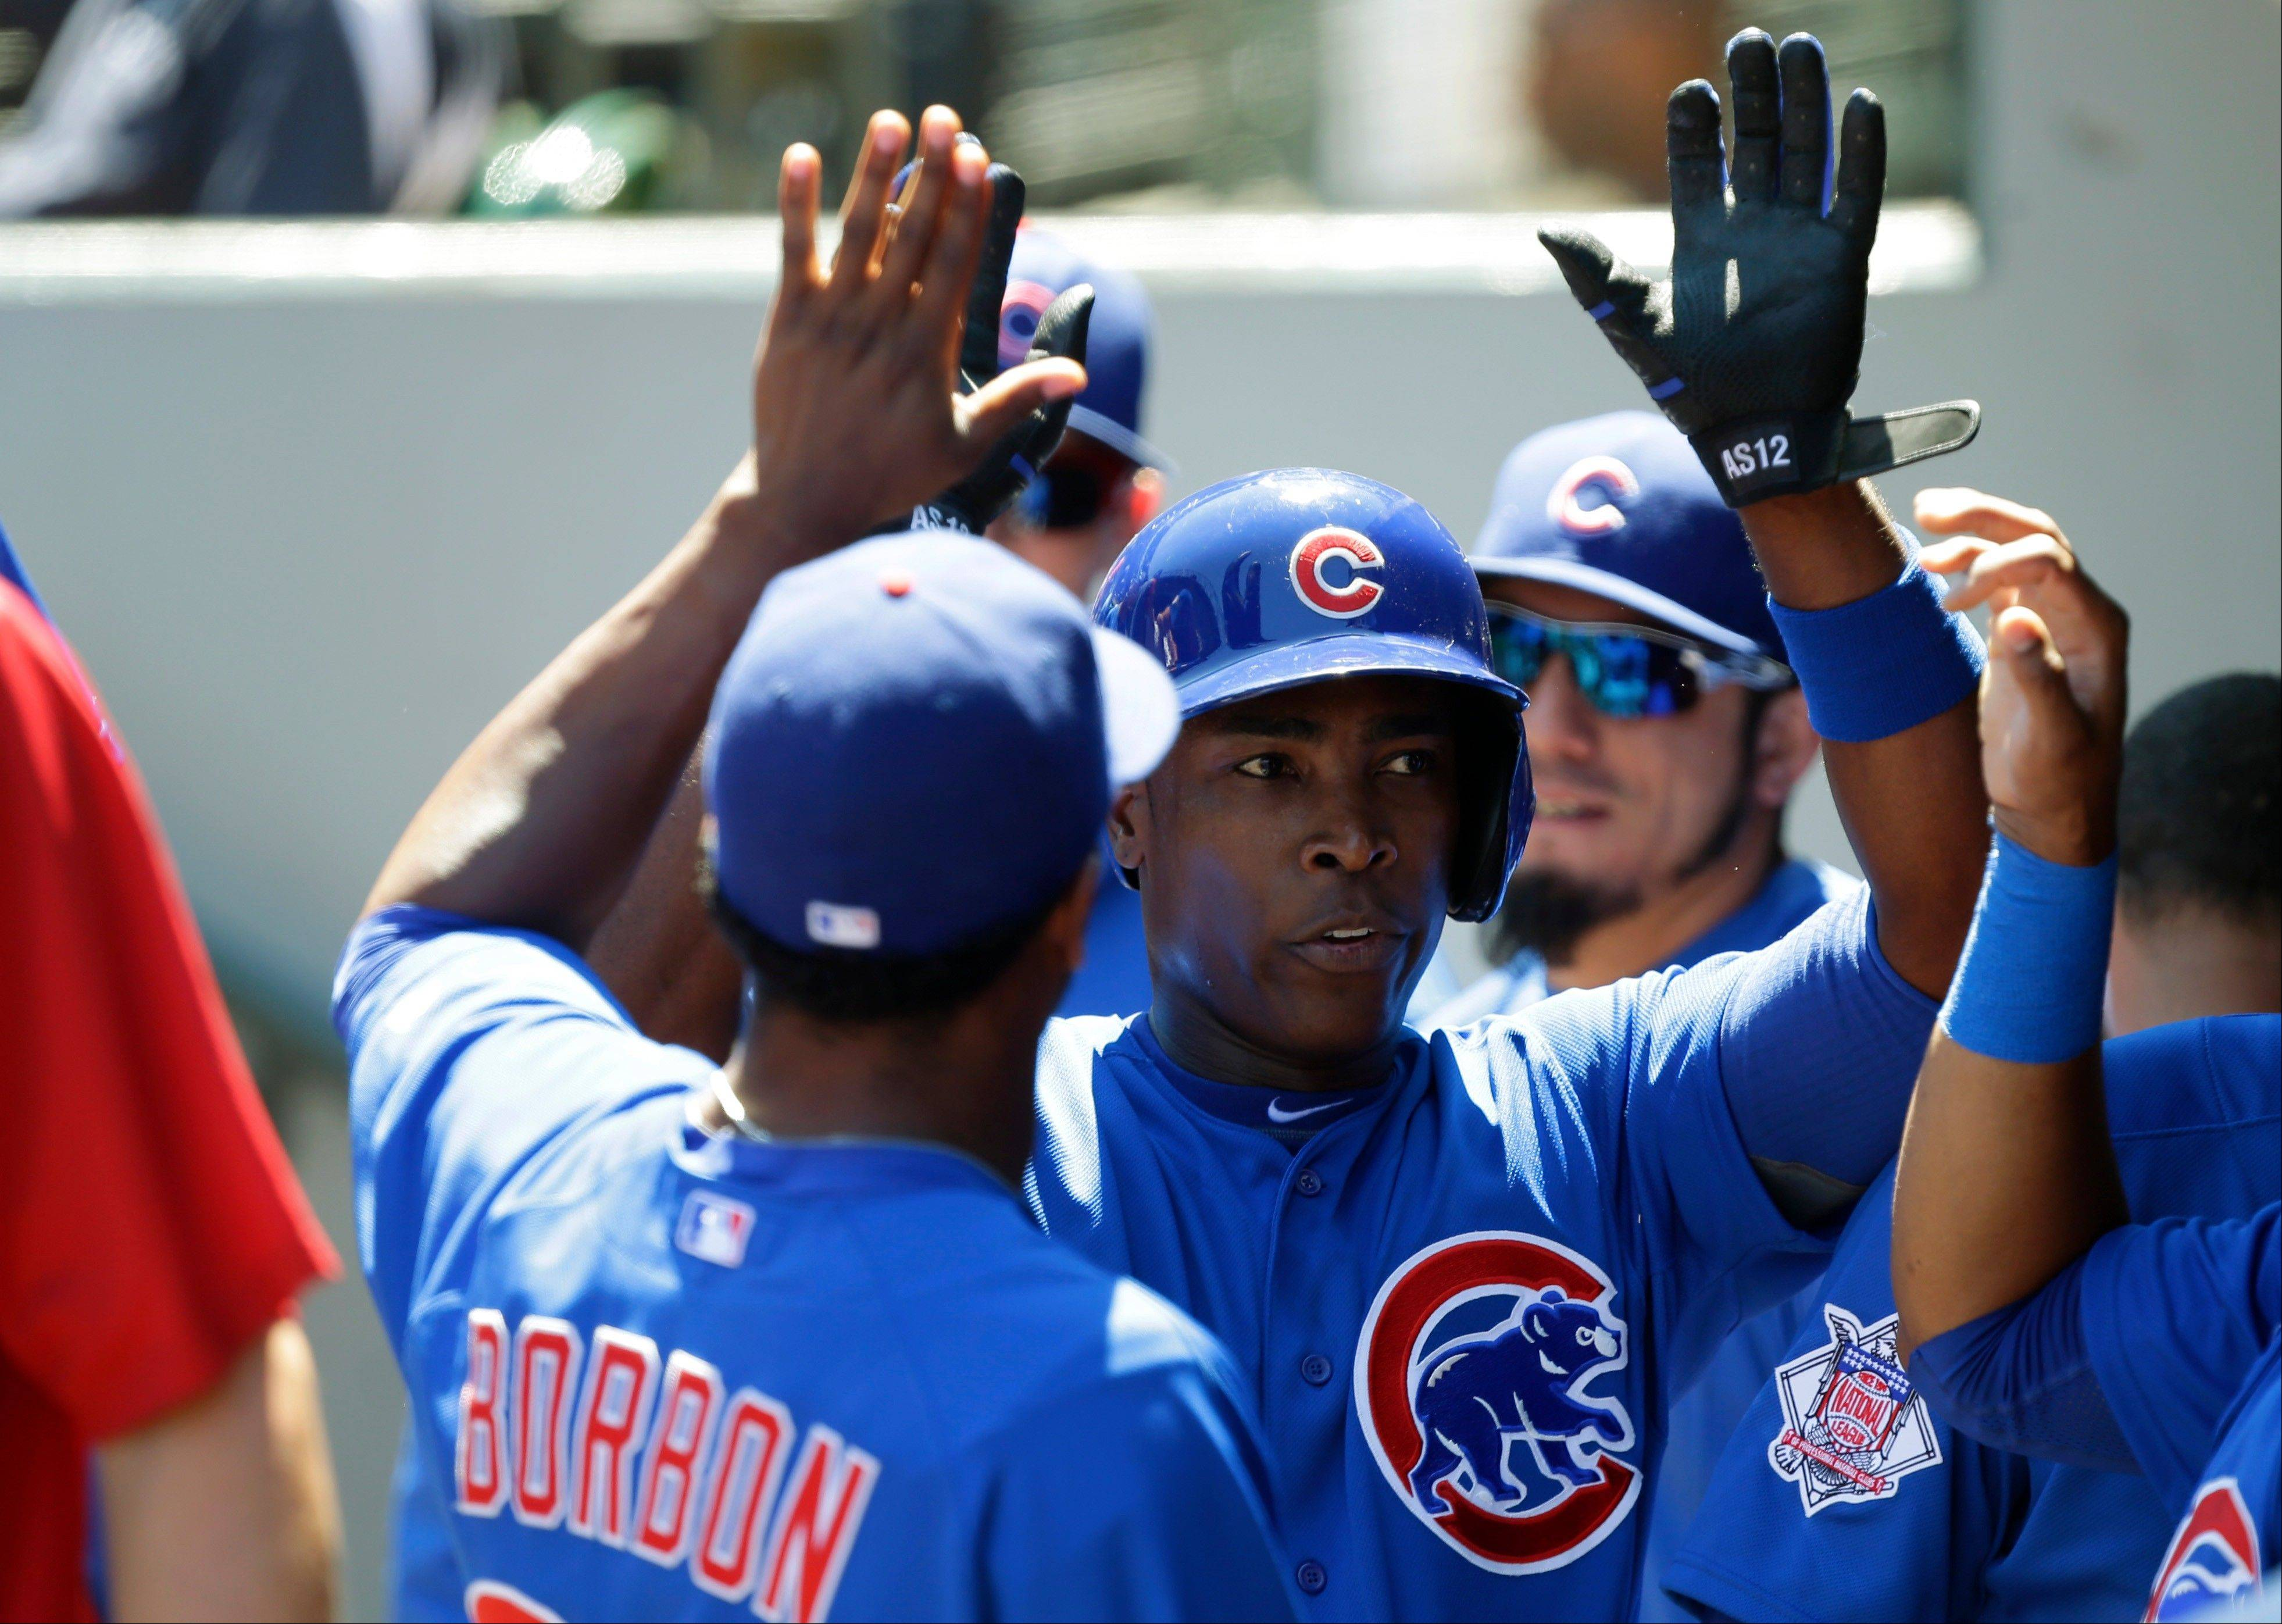 Chicago Cubs' Alfonso Soriano is greeted in the dugout after he scored against the Seattle Mariners in the second inning of a baseball game, Sunday, June 30, 2013, in Seattle. (AP Photo/Ted S. Warren)